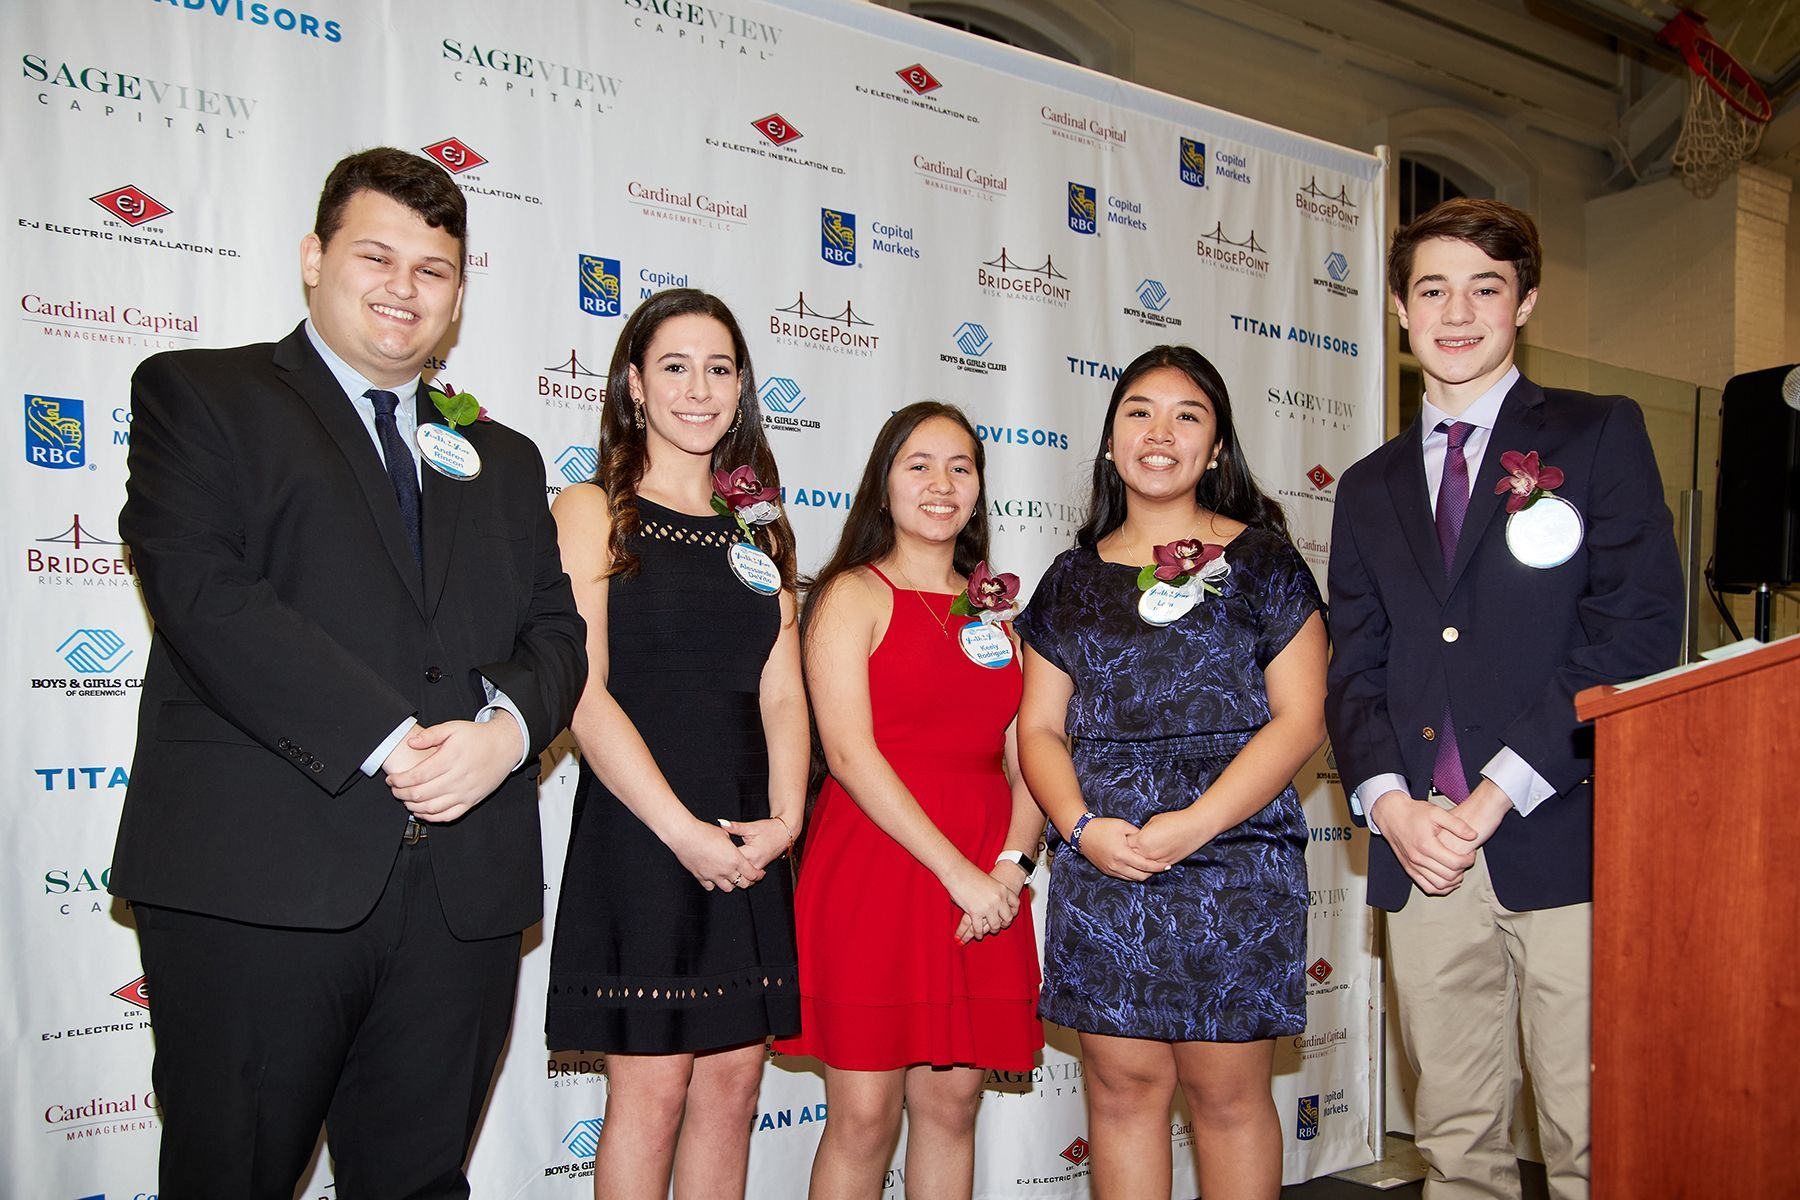 Boys & Girls Club of Greenwich Names Lara Javier 2020 Youth of the Year